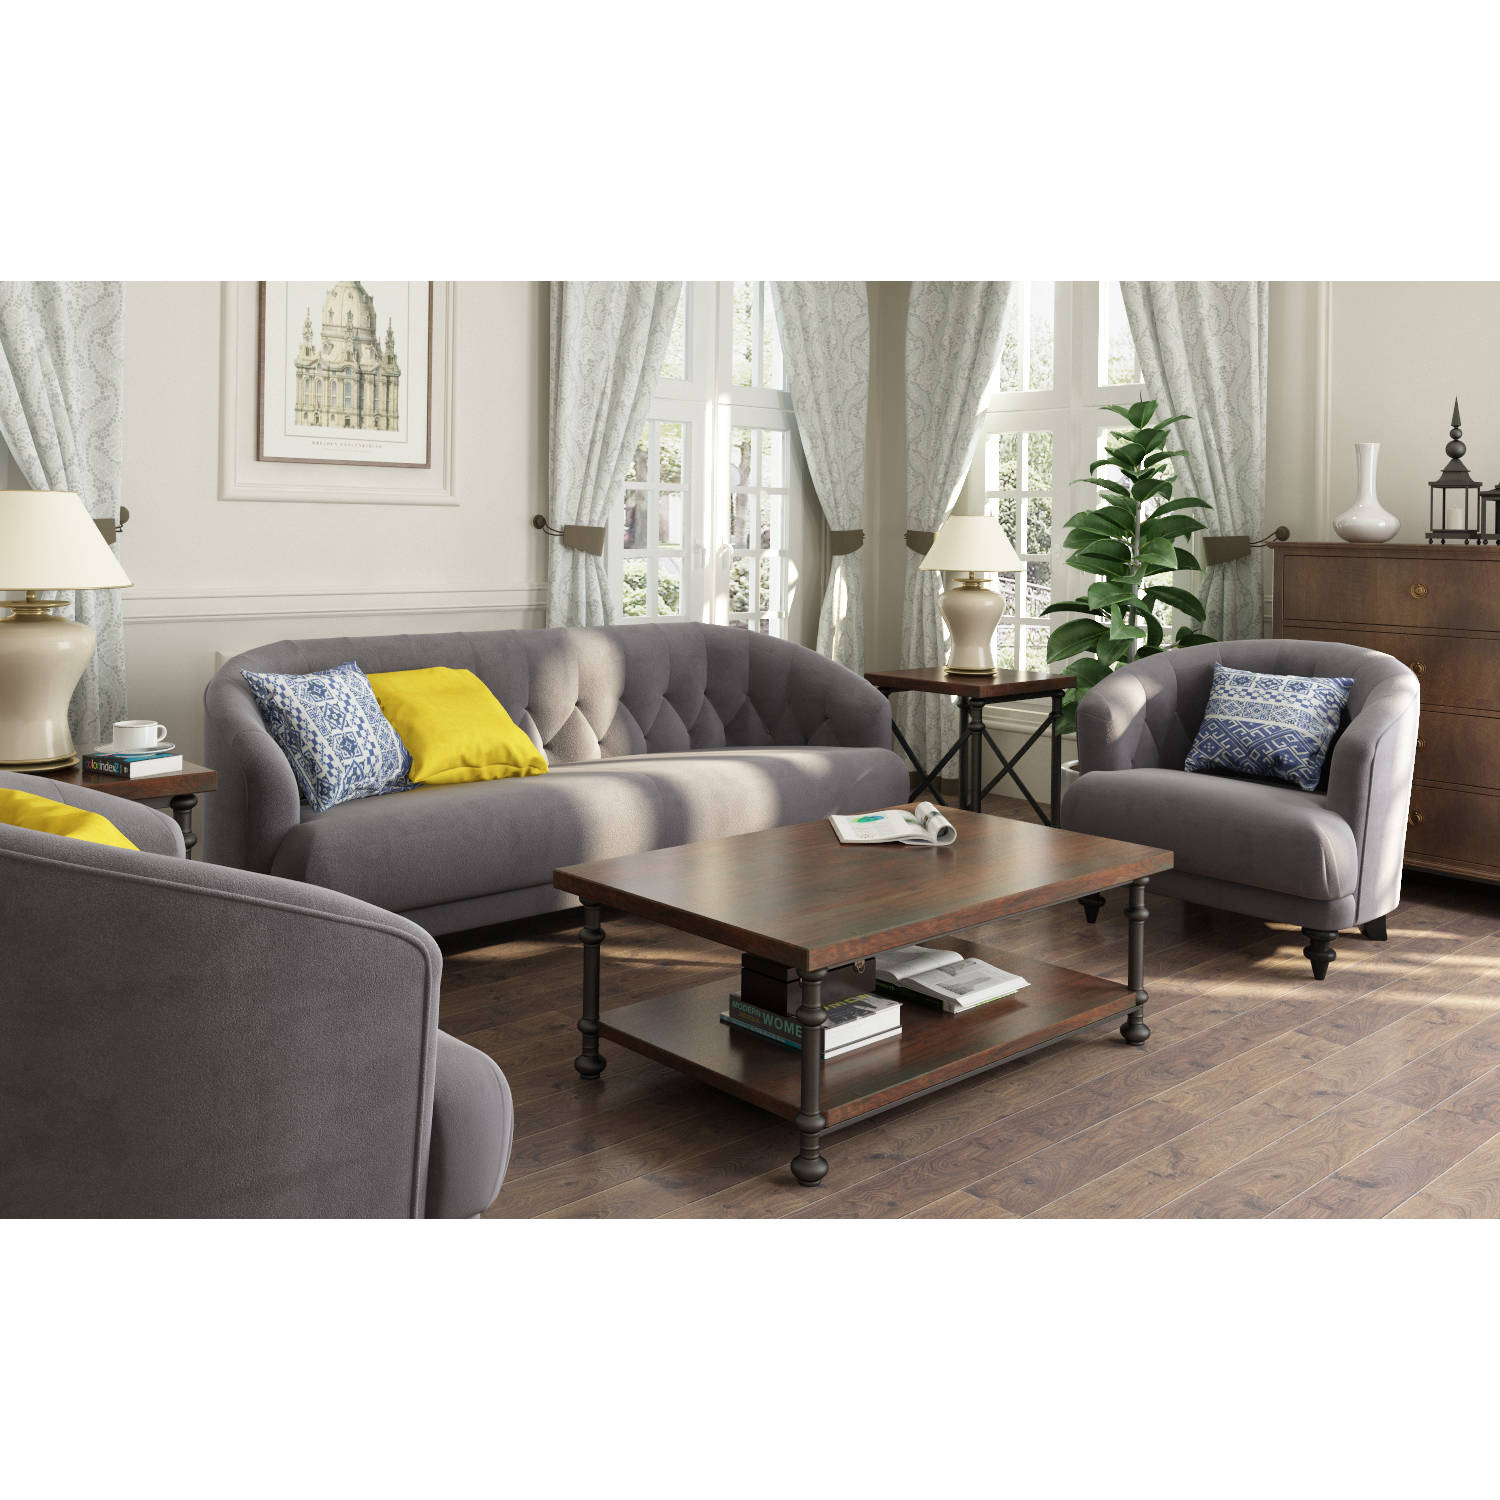 Tufted Memory Foam Accent Chair   Walmart.com